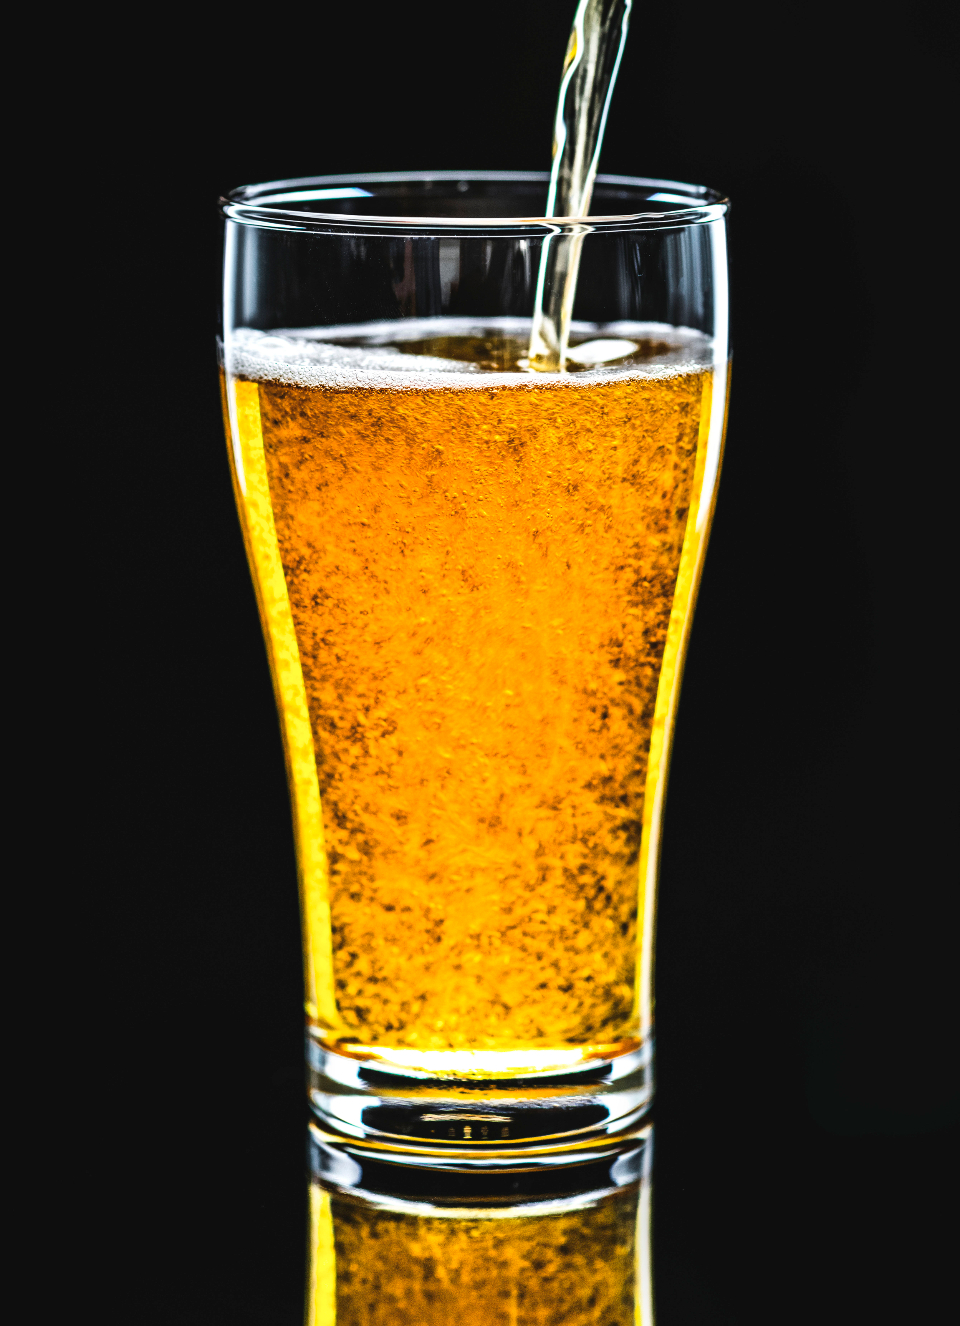 alcohol alcoholism ale background bar beer beverage brewed brewery bubble celebration close up cold cold drink draft draught drink drinking drunk glass hops lager light liquid macro motion party pint pouring pub refreshment summer taste